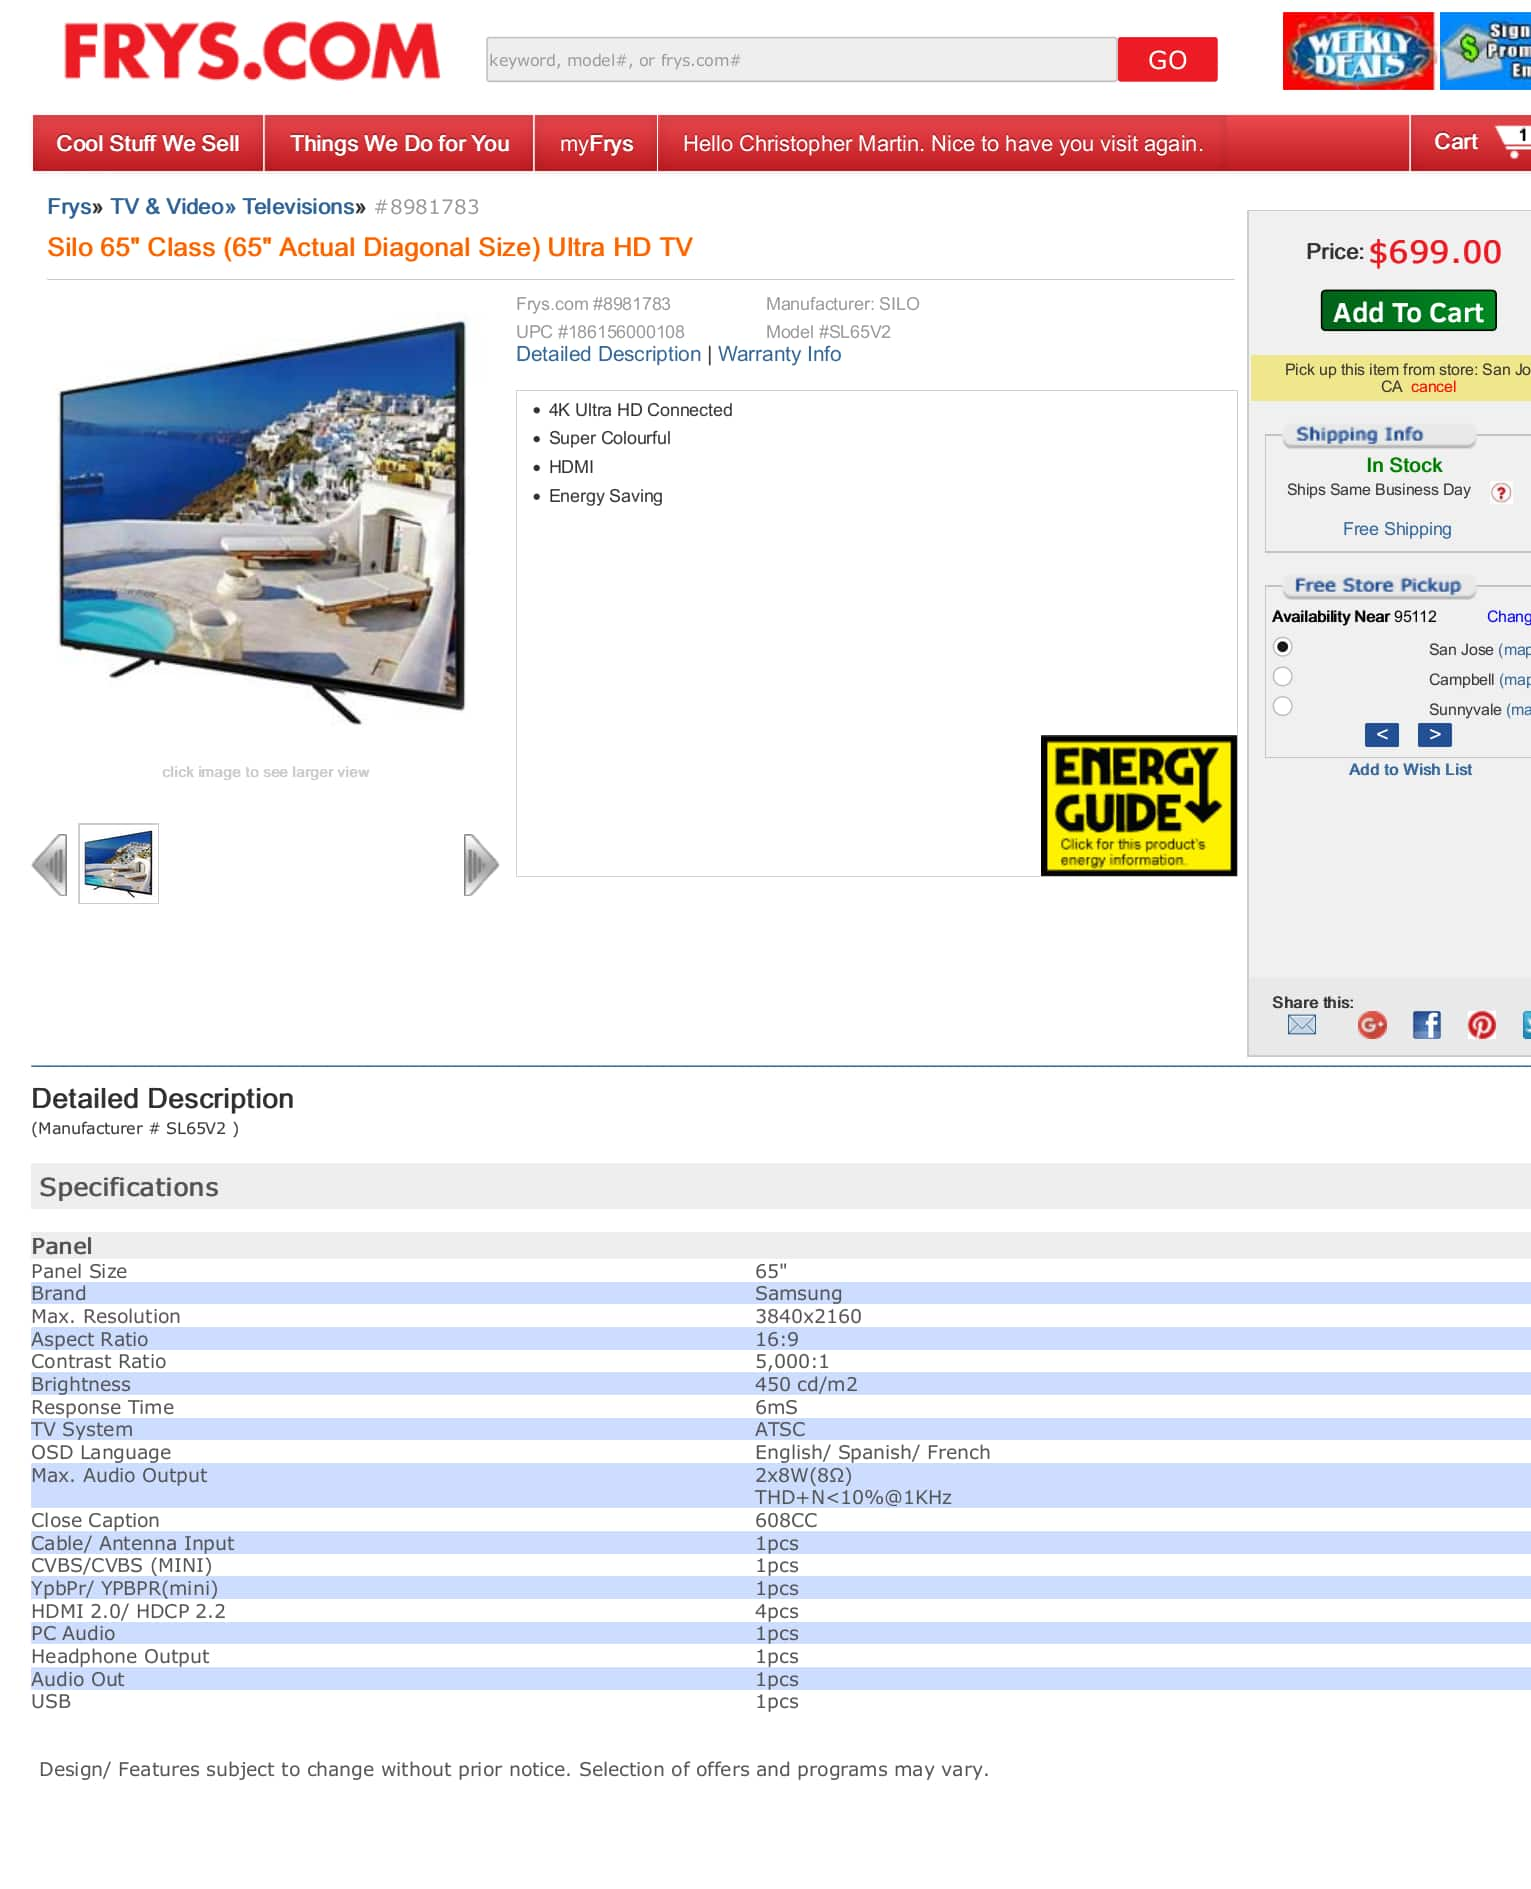 "Fry's Silo 65"" Class (65"" Actual Diagonal Size) 4K Ultra HD TV $549 with coupon and free freight shipping) (also free store pickup)"